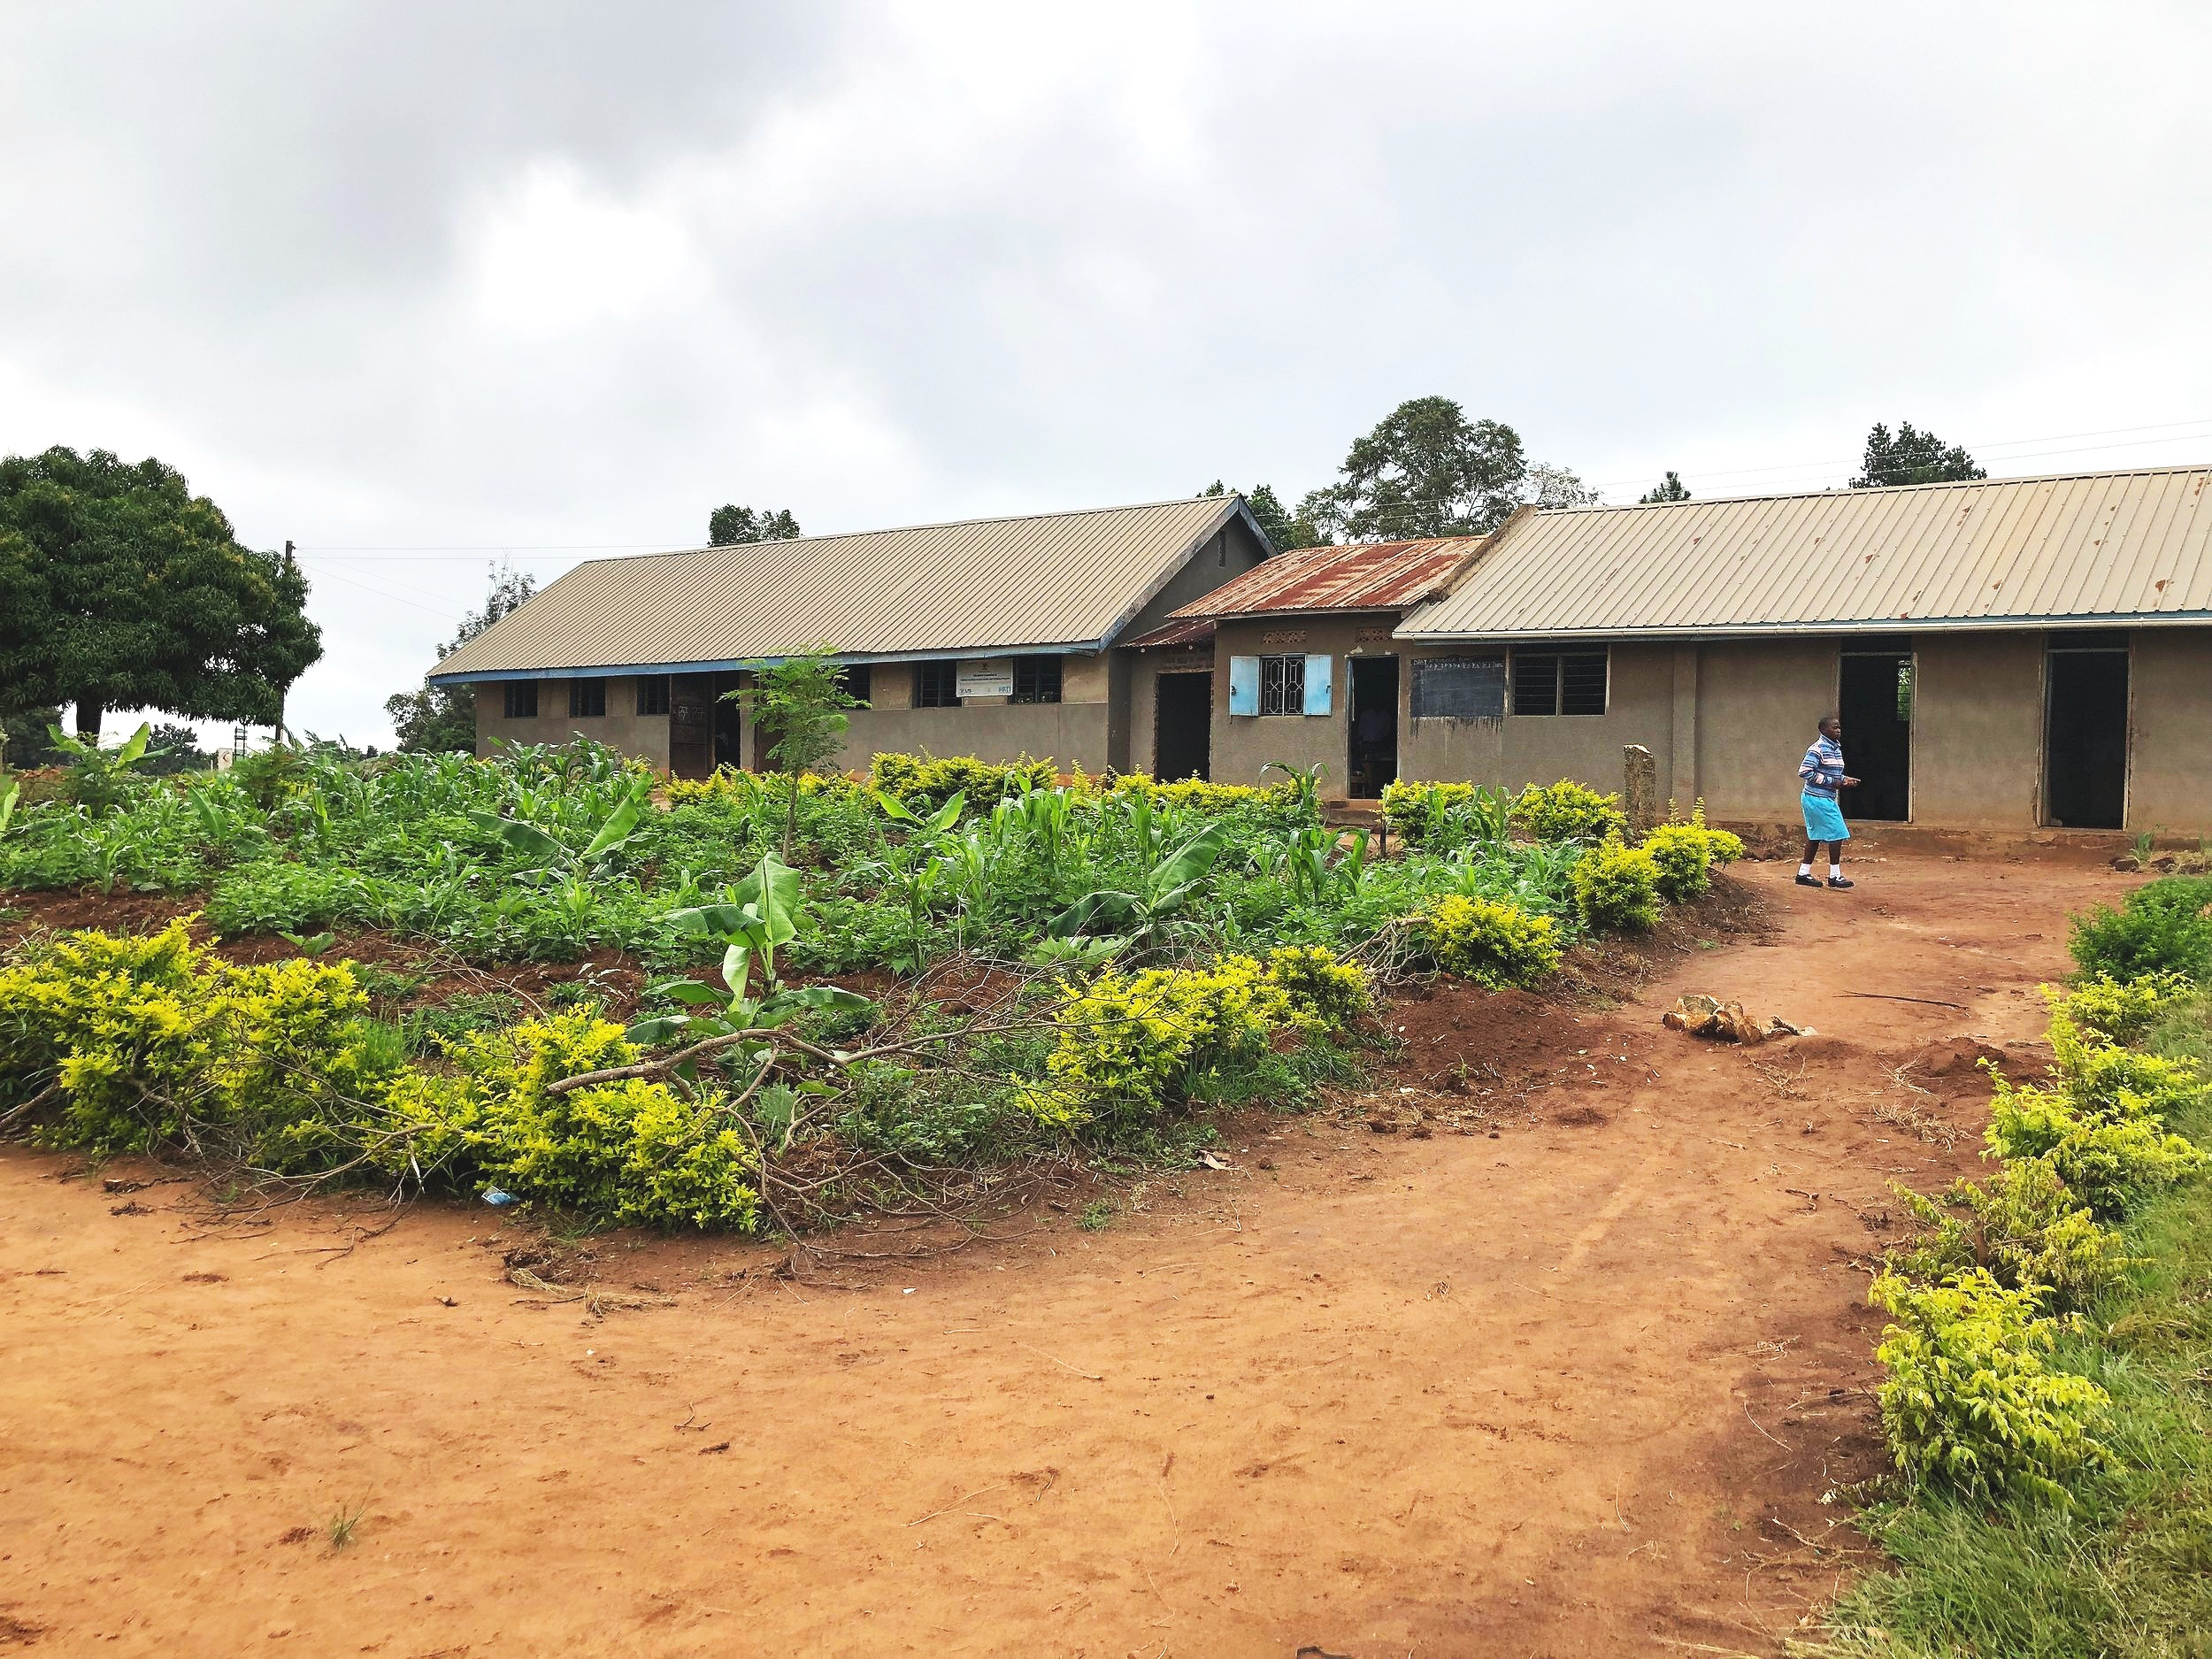 Grassy areas used to cover the center part of the school campus and alongside every building. Now, those areas are utilized to grow more produce to feed their students.